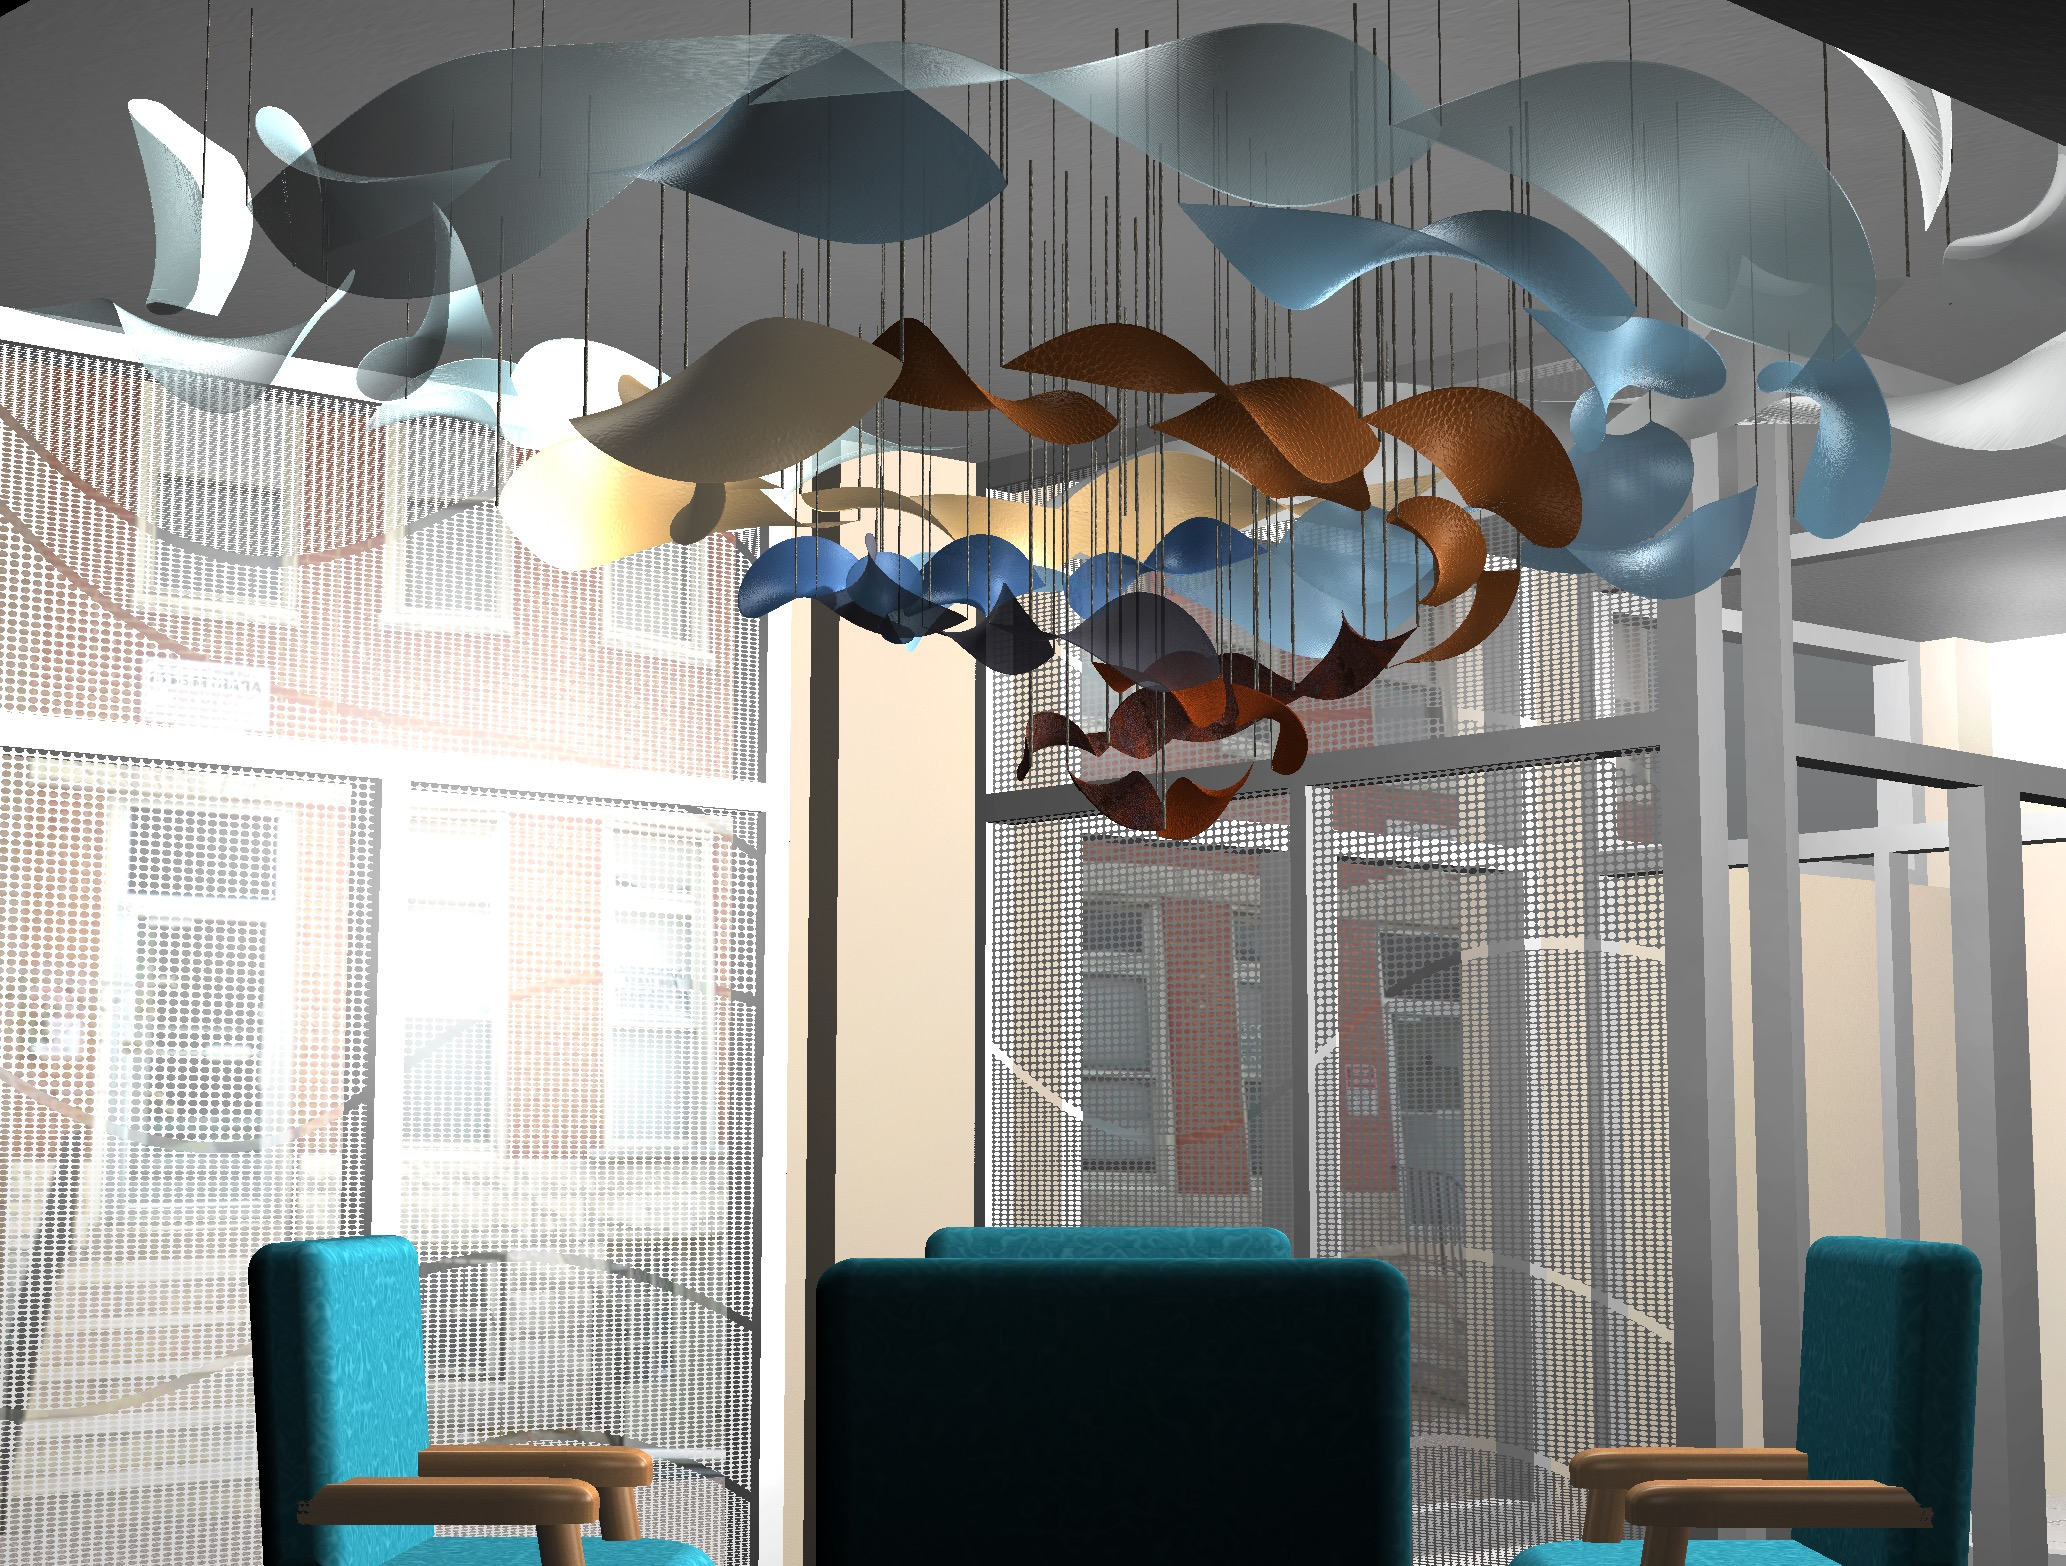 Two spirals — one steel, aluminum, and copper, the other blue-dyed silk and rayon — spin out from the center of the room, suspended by steel wire.